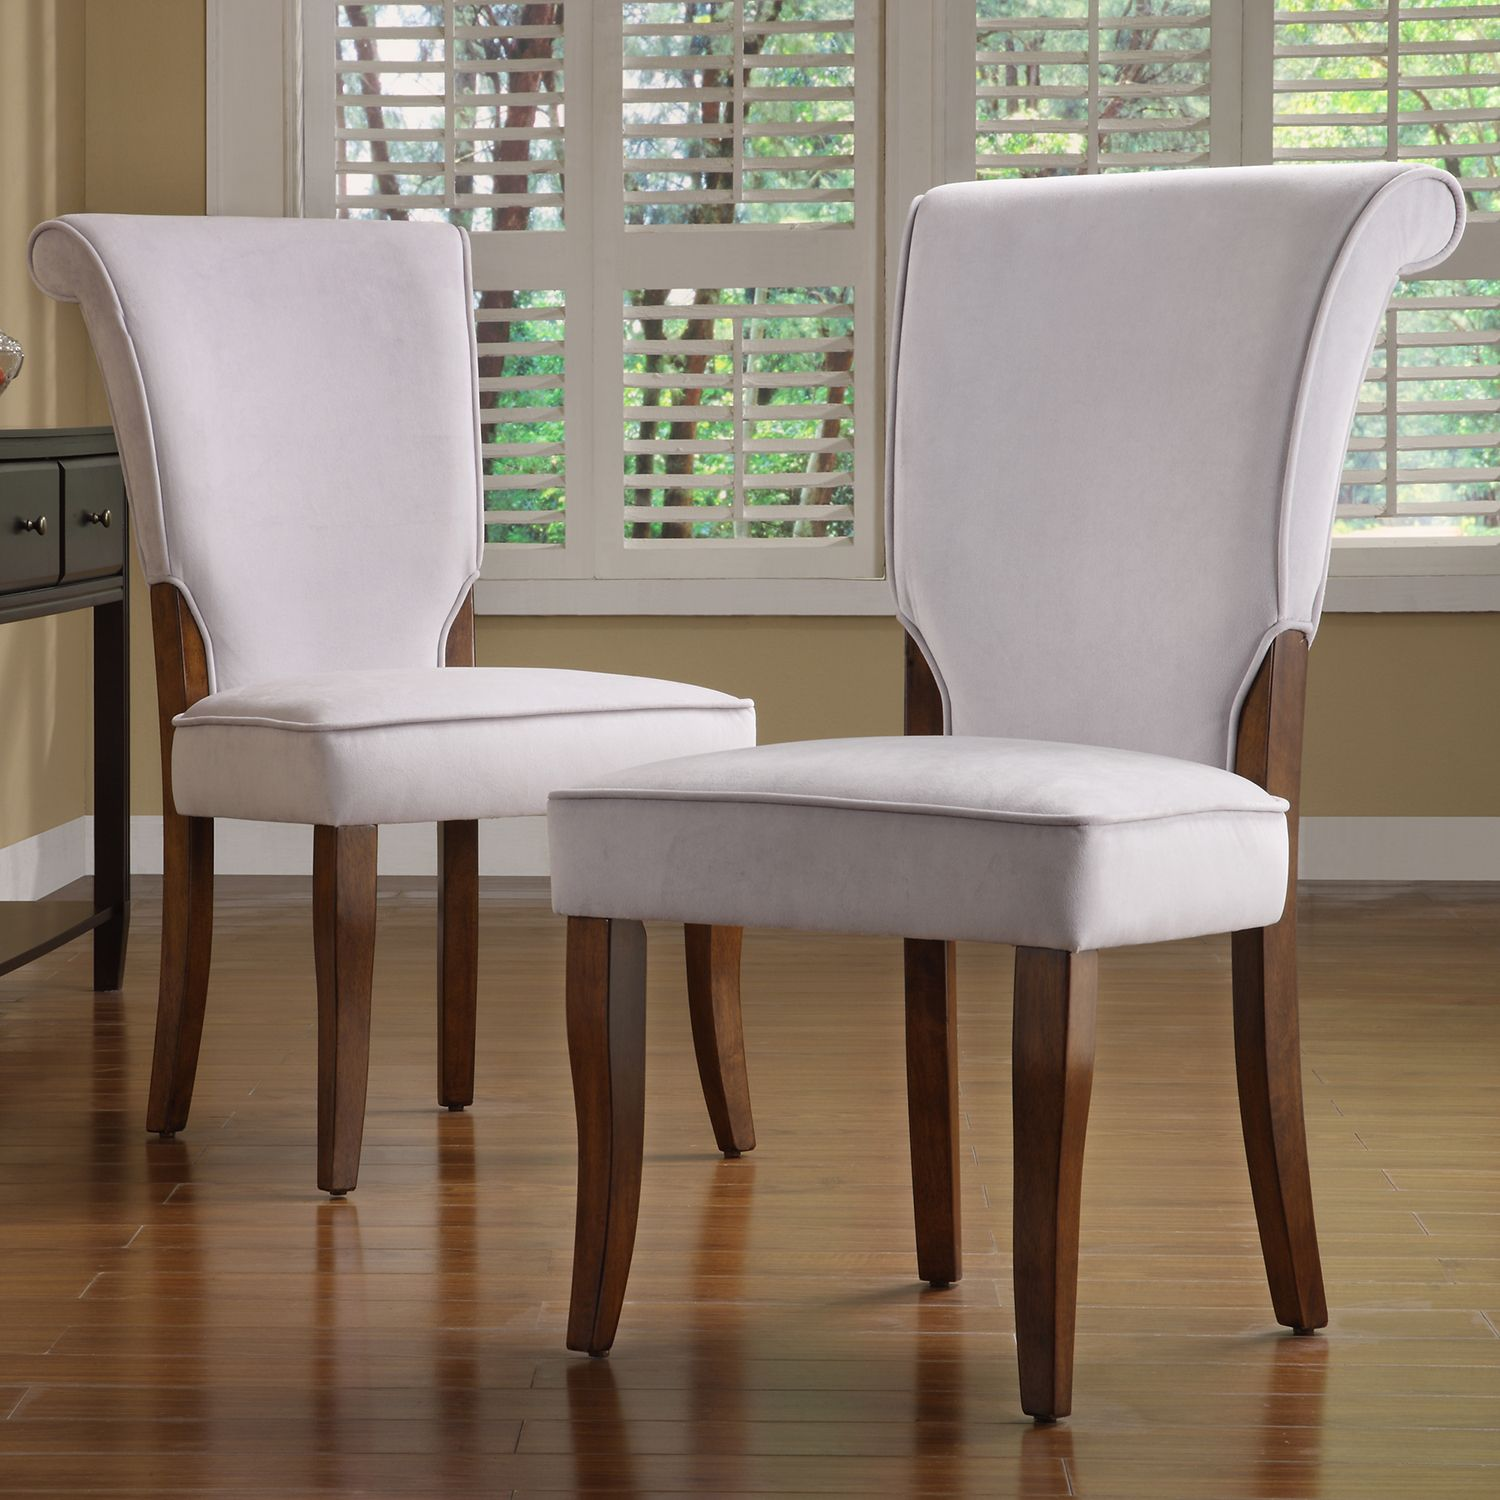 Andorra Grey Velvet Upholstered Dining Chair (Set of 2) by iNSPIRE Q  Classic by iNSPIRE Q